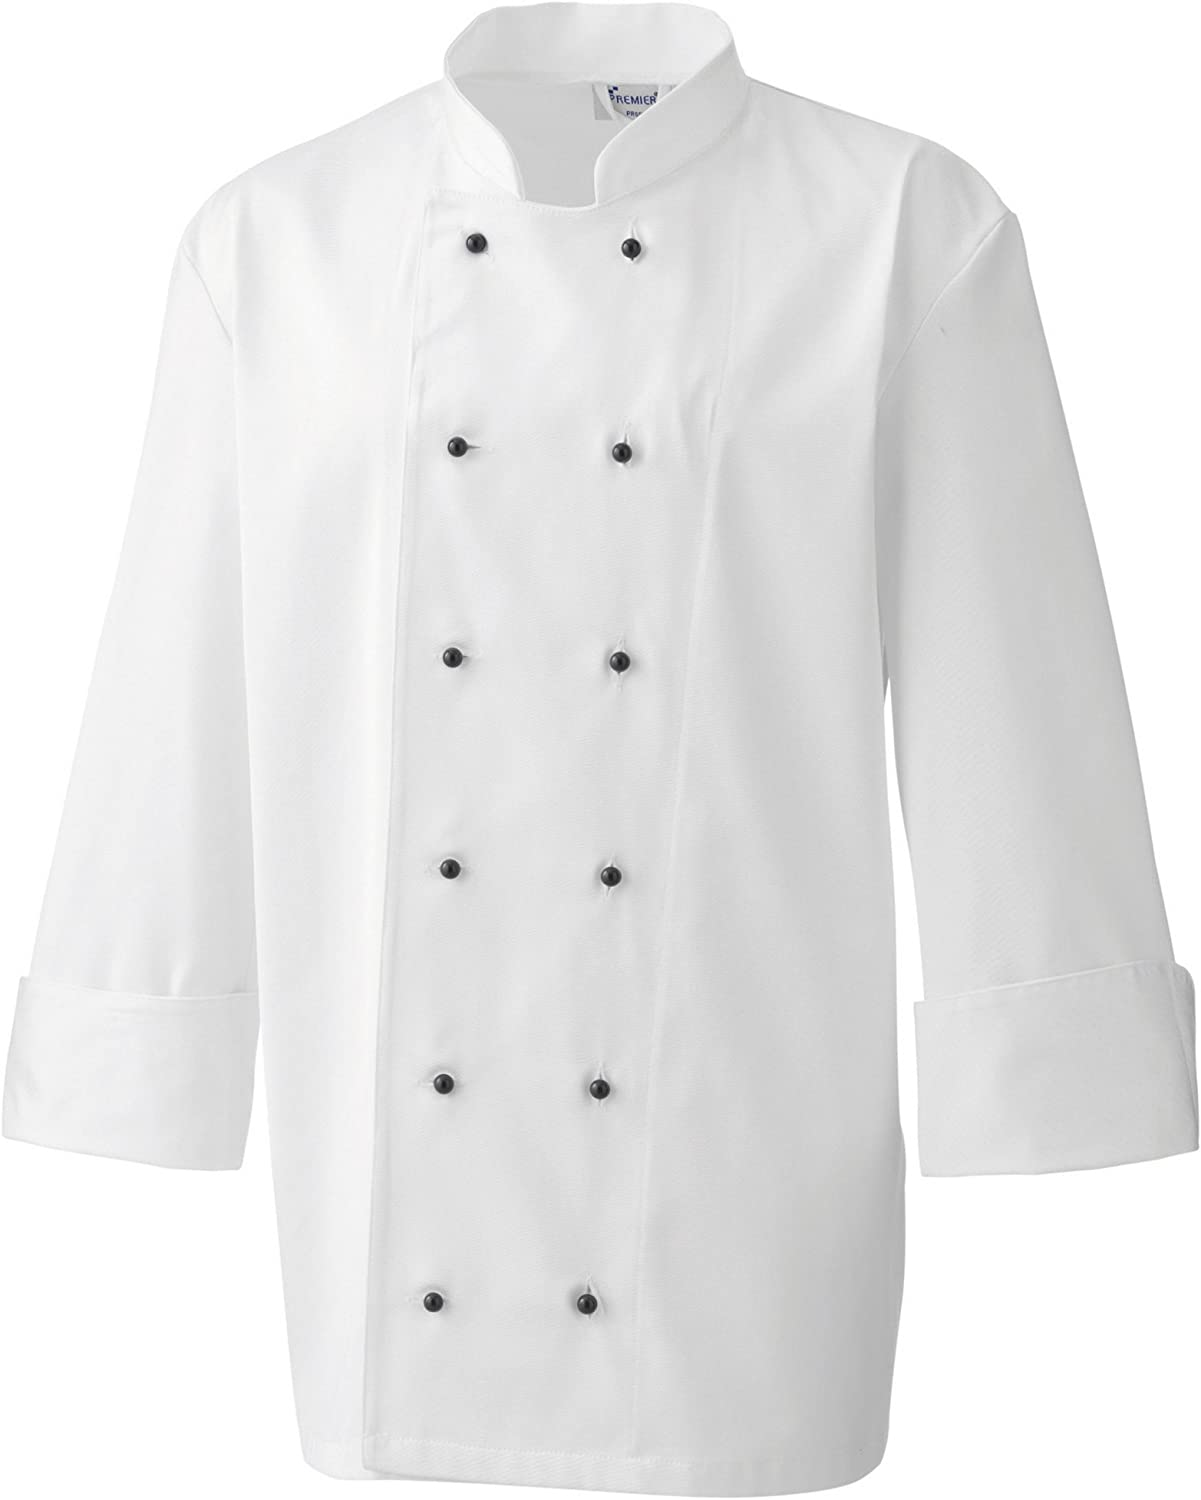 Premier Chefs Free Shipping Cheap Bargain Gift Jacket Genuine Free Shipping Studs for of PR651 Pack PR655 Workwear